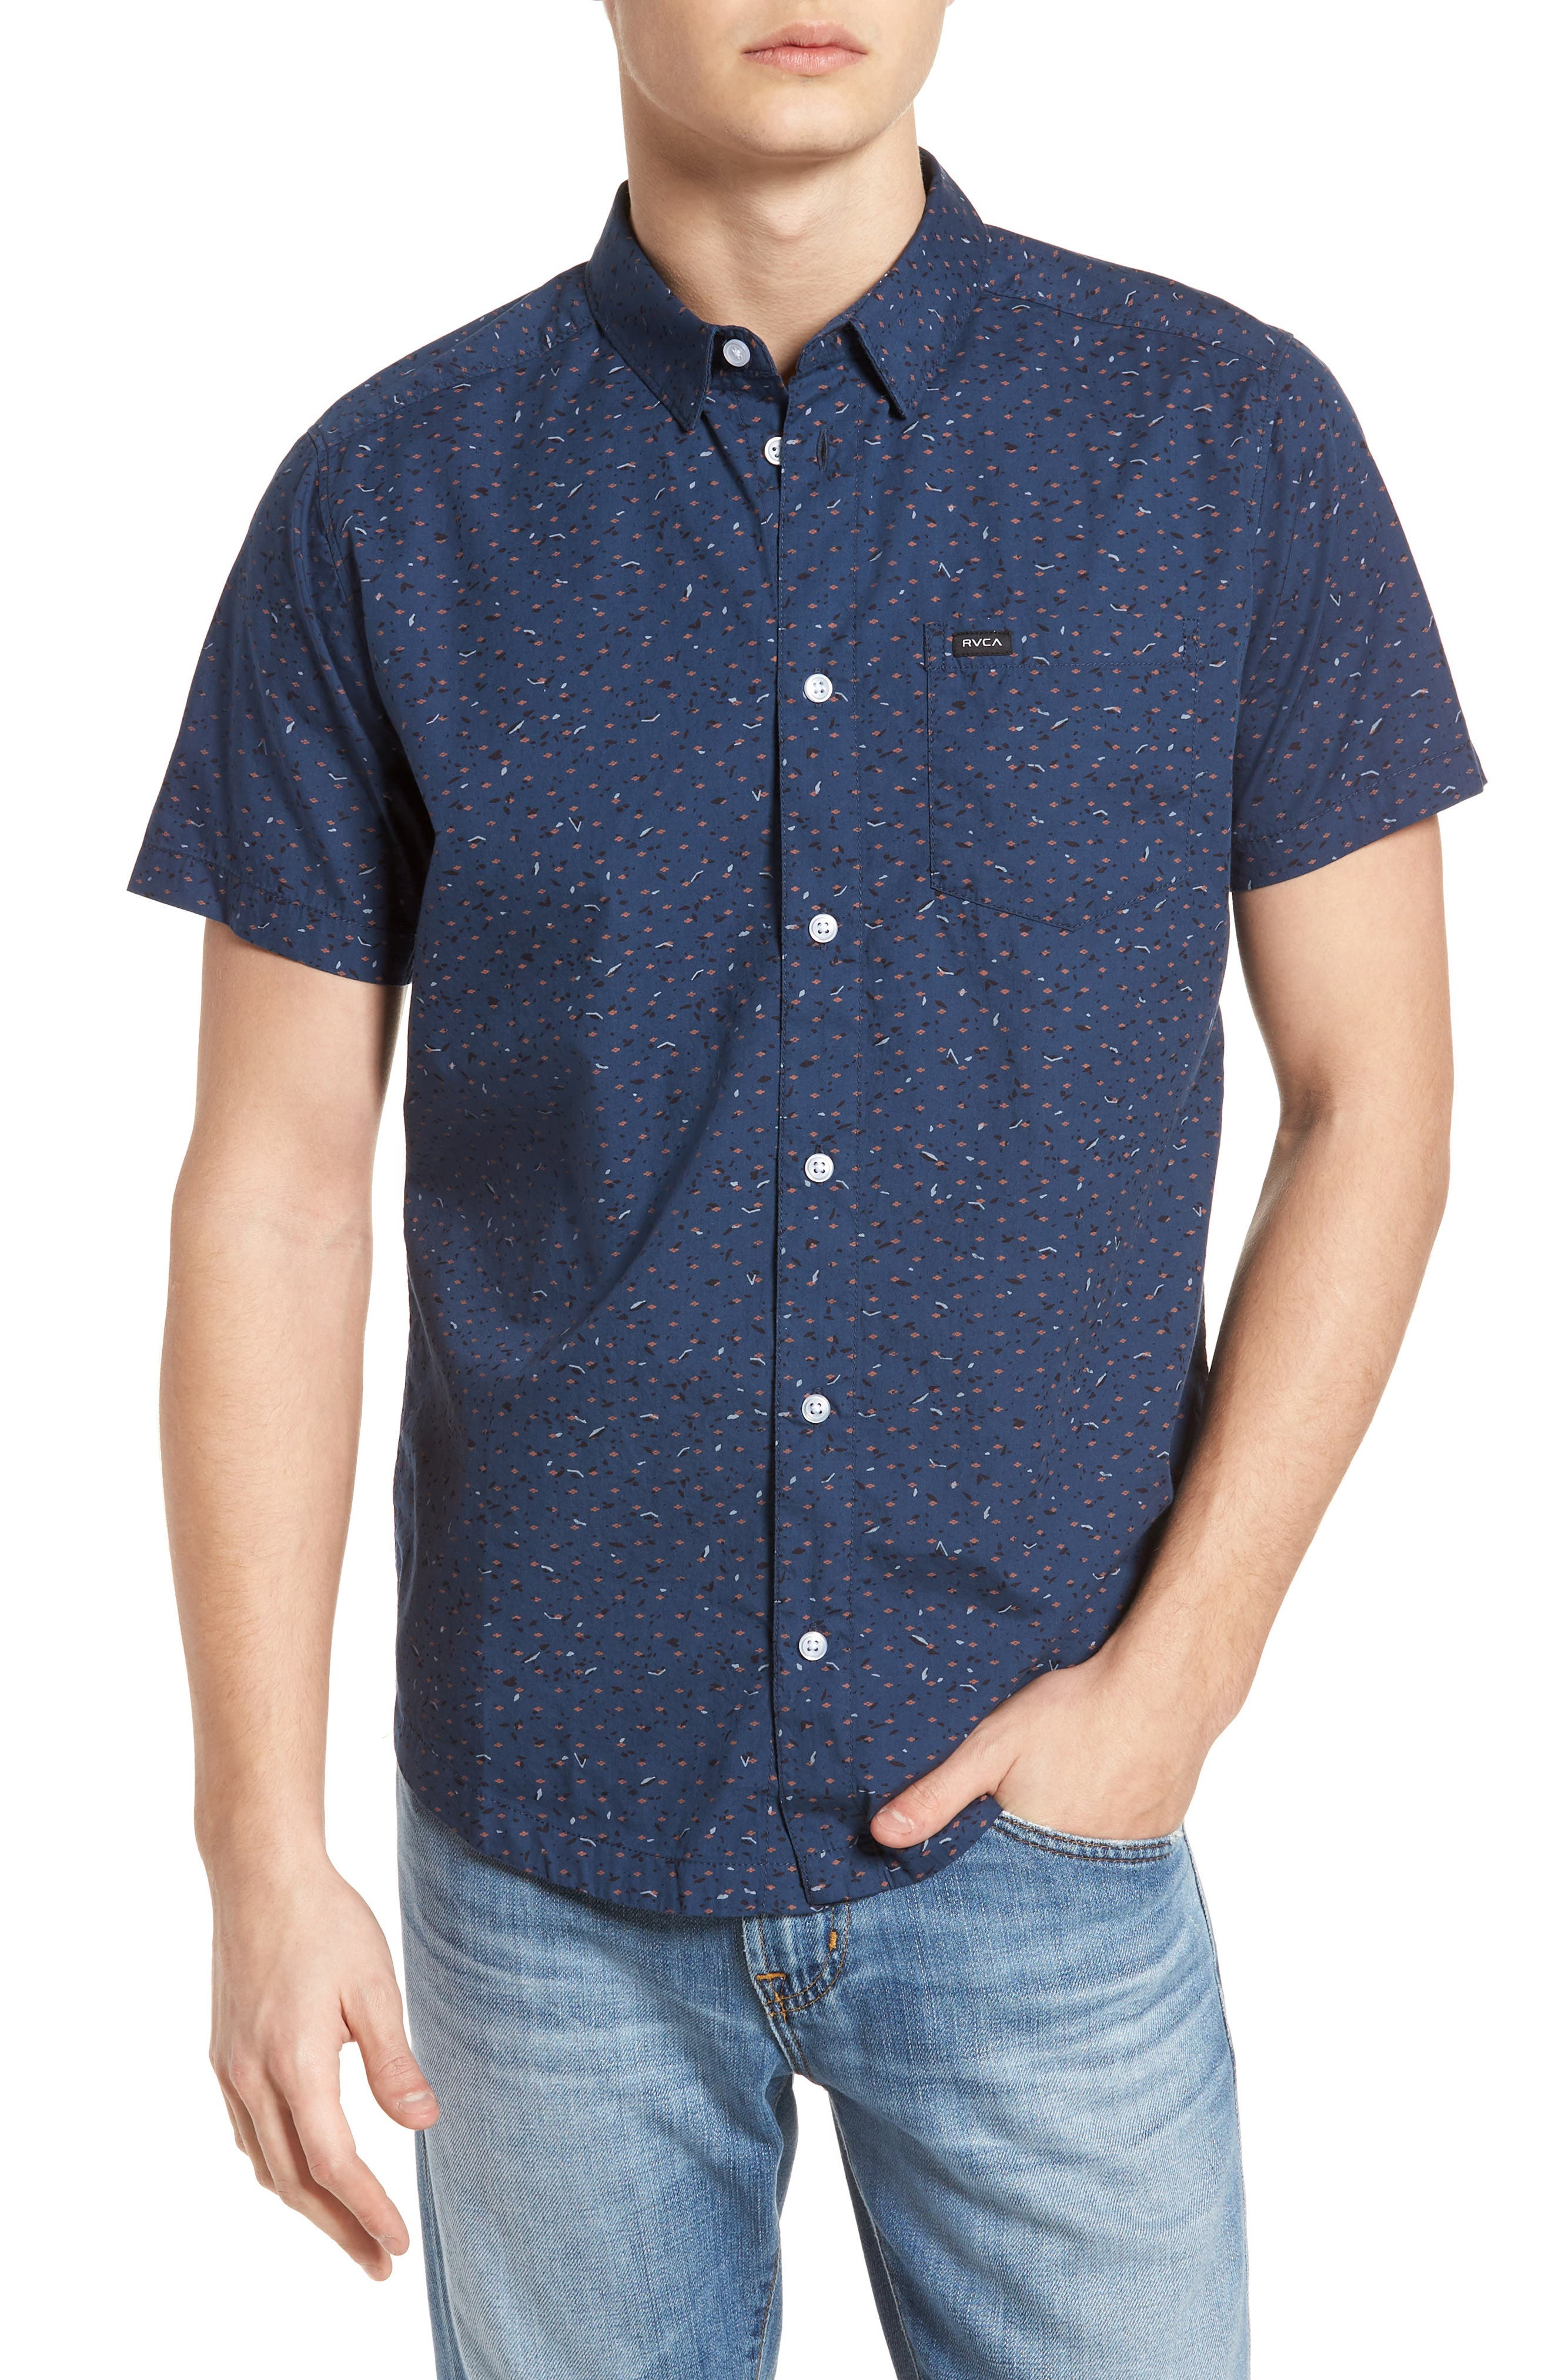 Jaded Woven Shirt,                         Main,                         color, 487